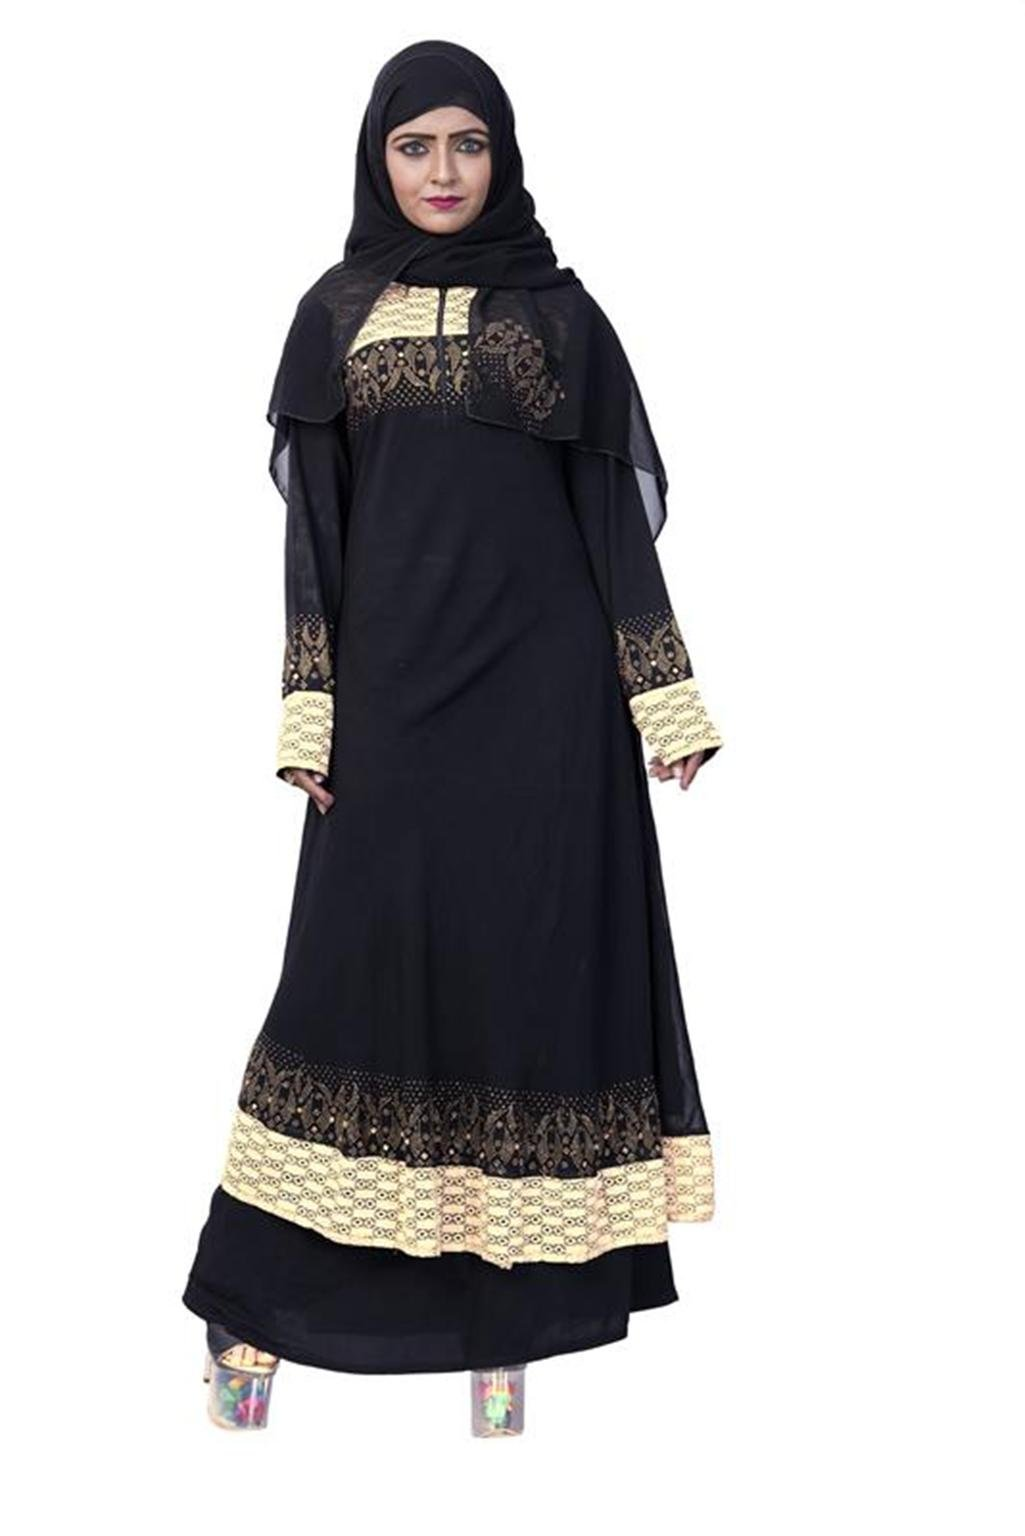 Women's Muslim Long Clothing Abaya Islamic Kaftan Burka Lady Cocktail Dress